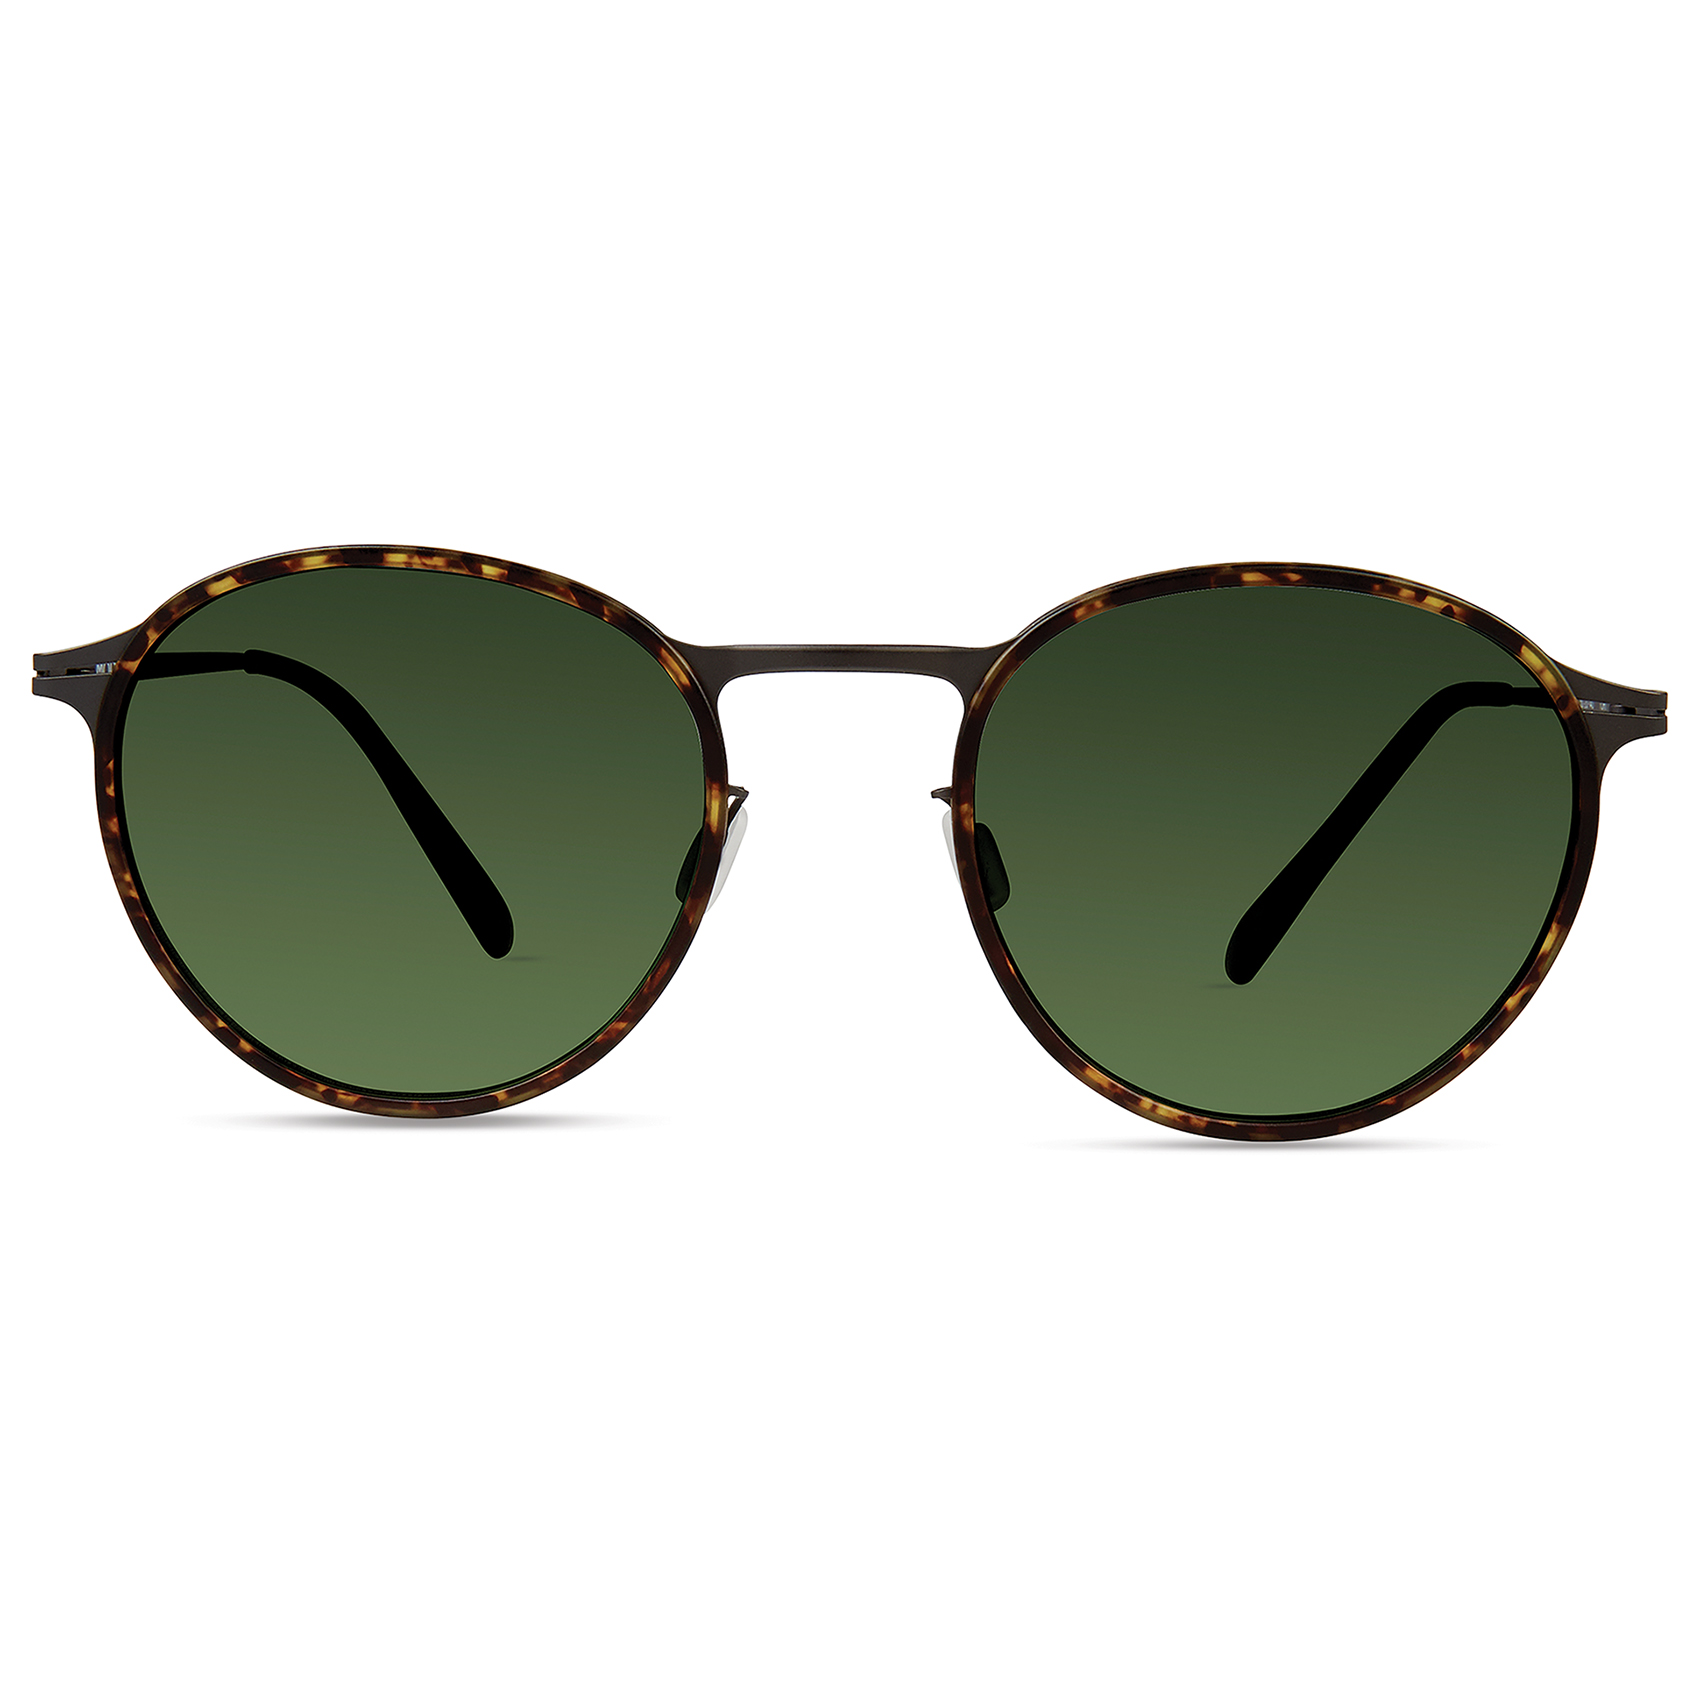 Gifts that give back - Modo 684 sunglasses